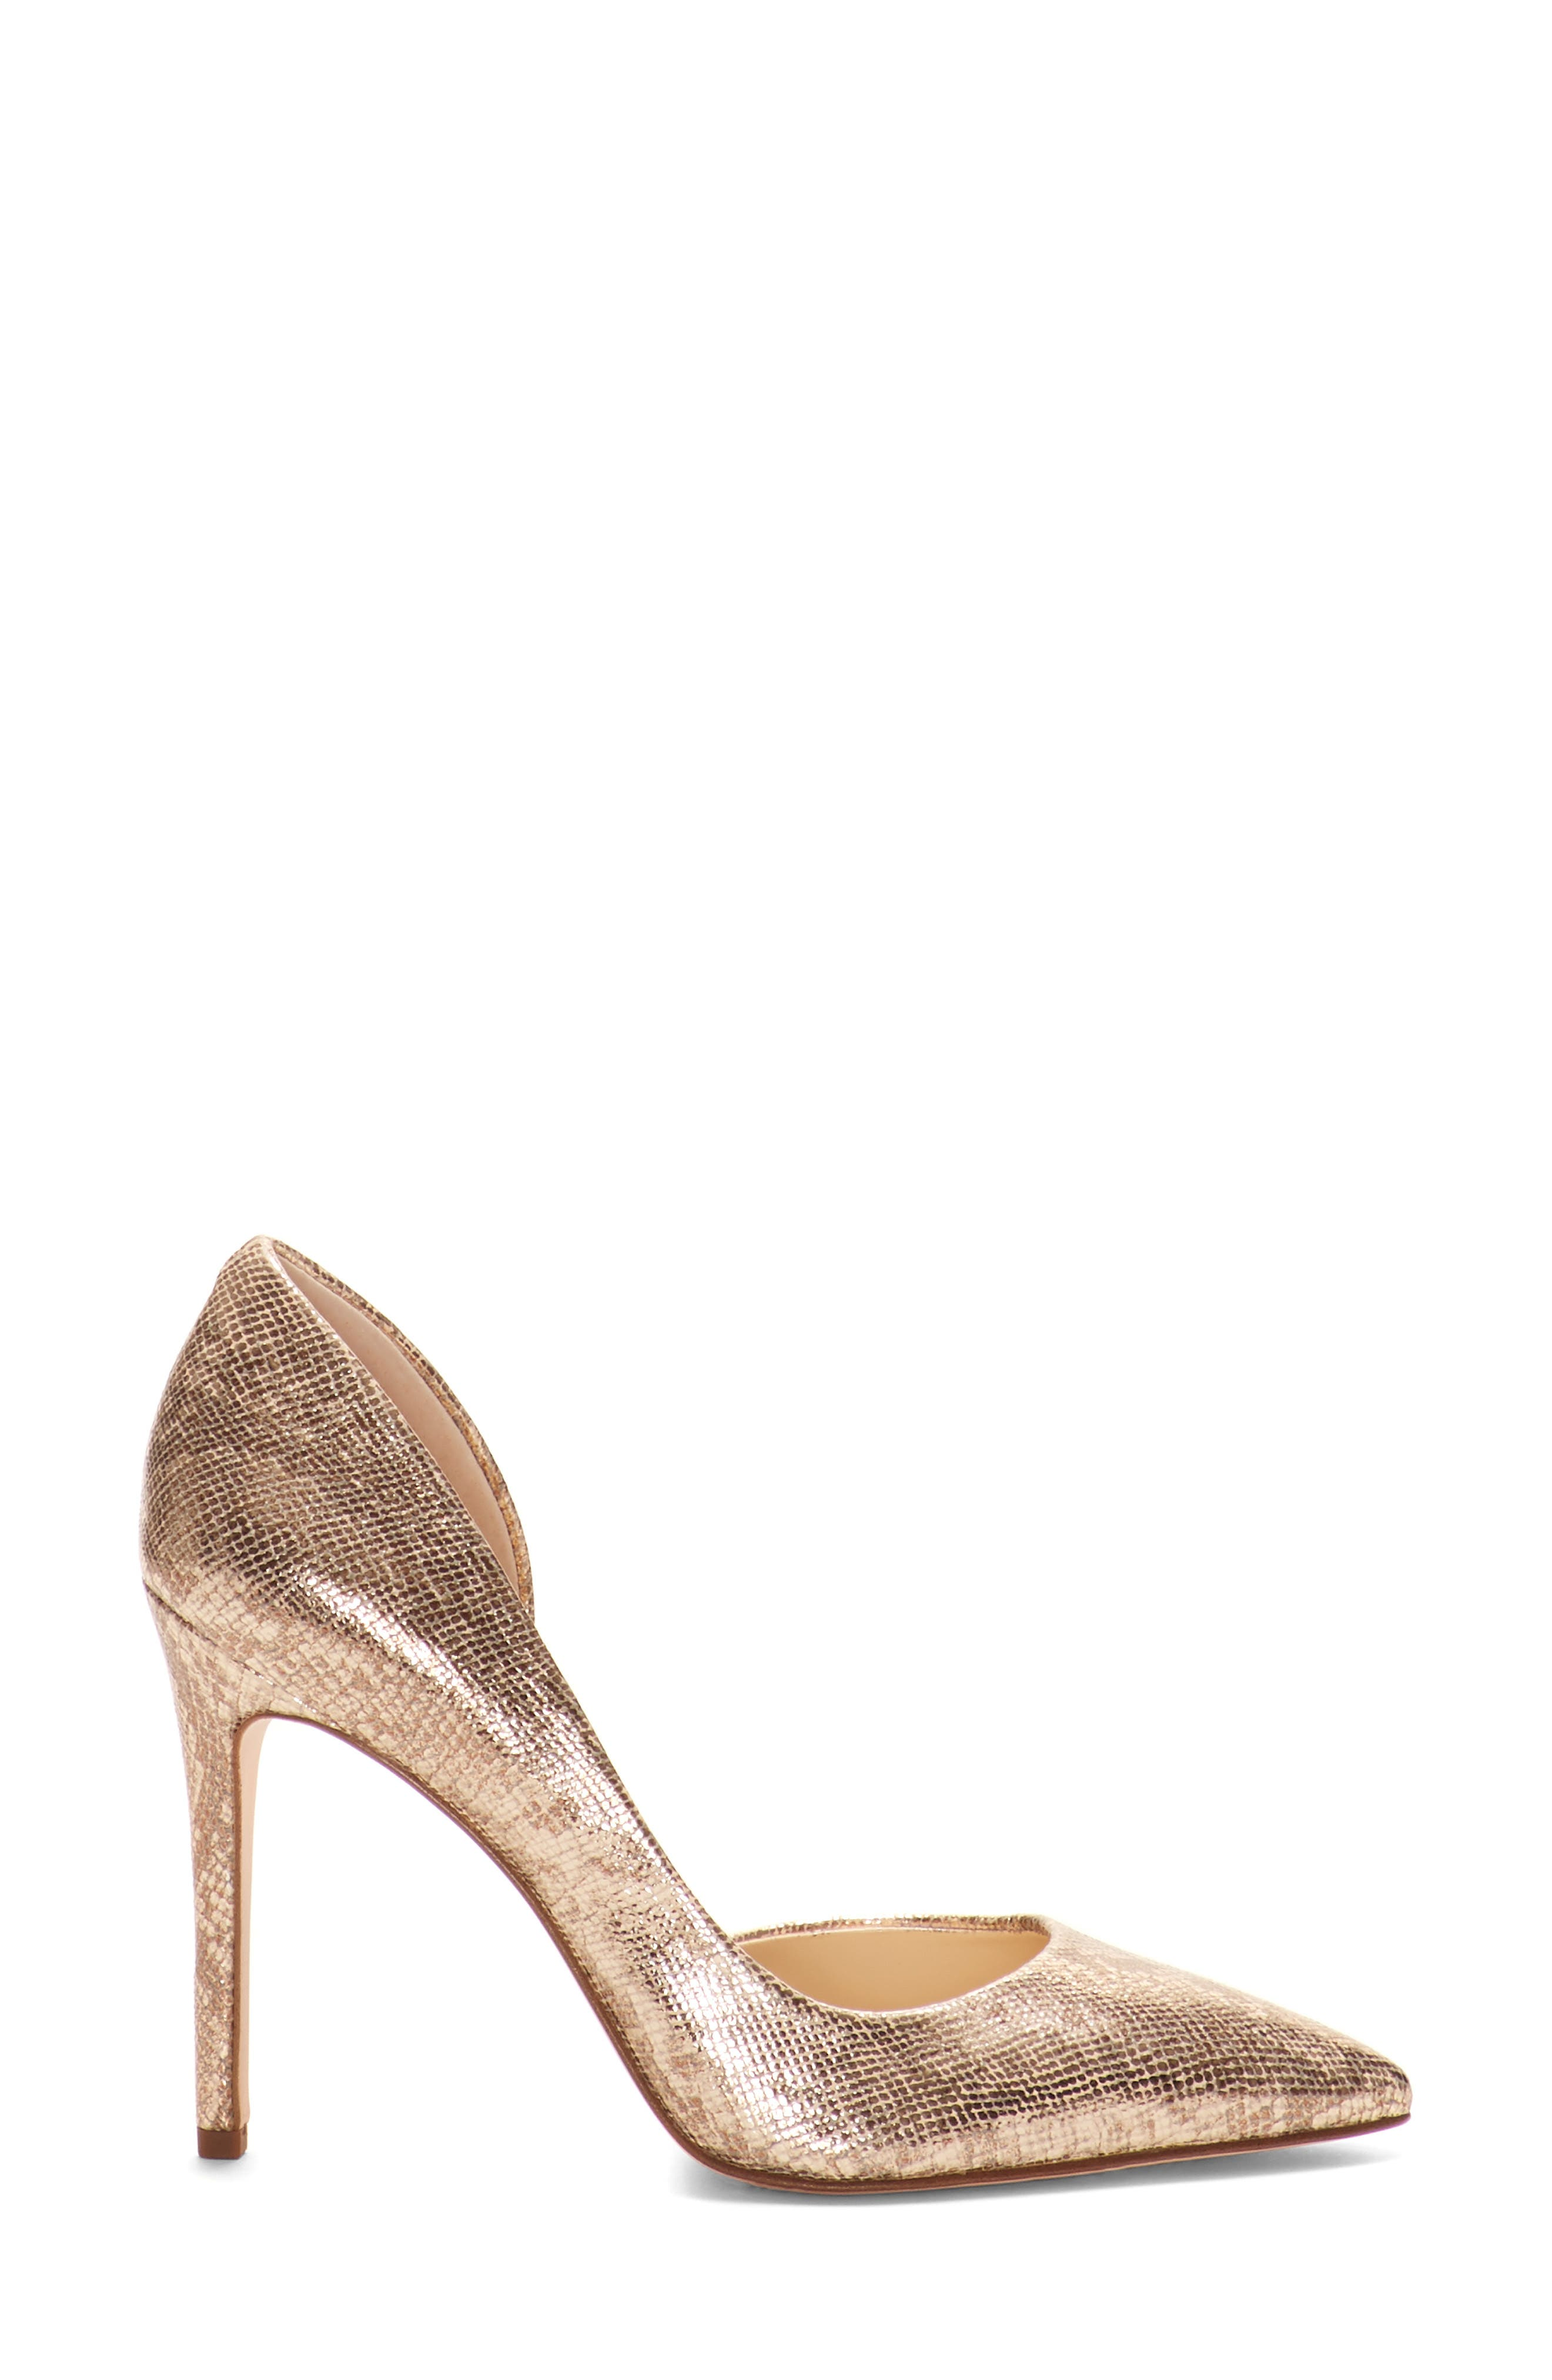 JESSICA SIMPSON,                             Pheona Pump,                             Alternate thumbnail 2, color,                             KARAT GOLD